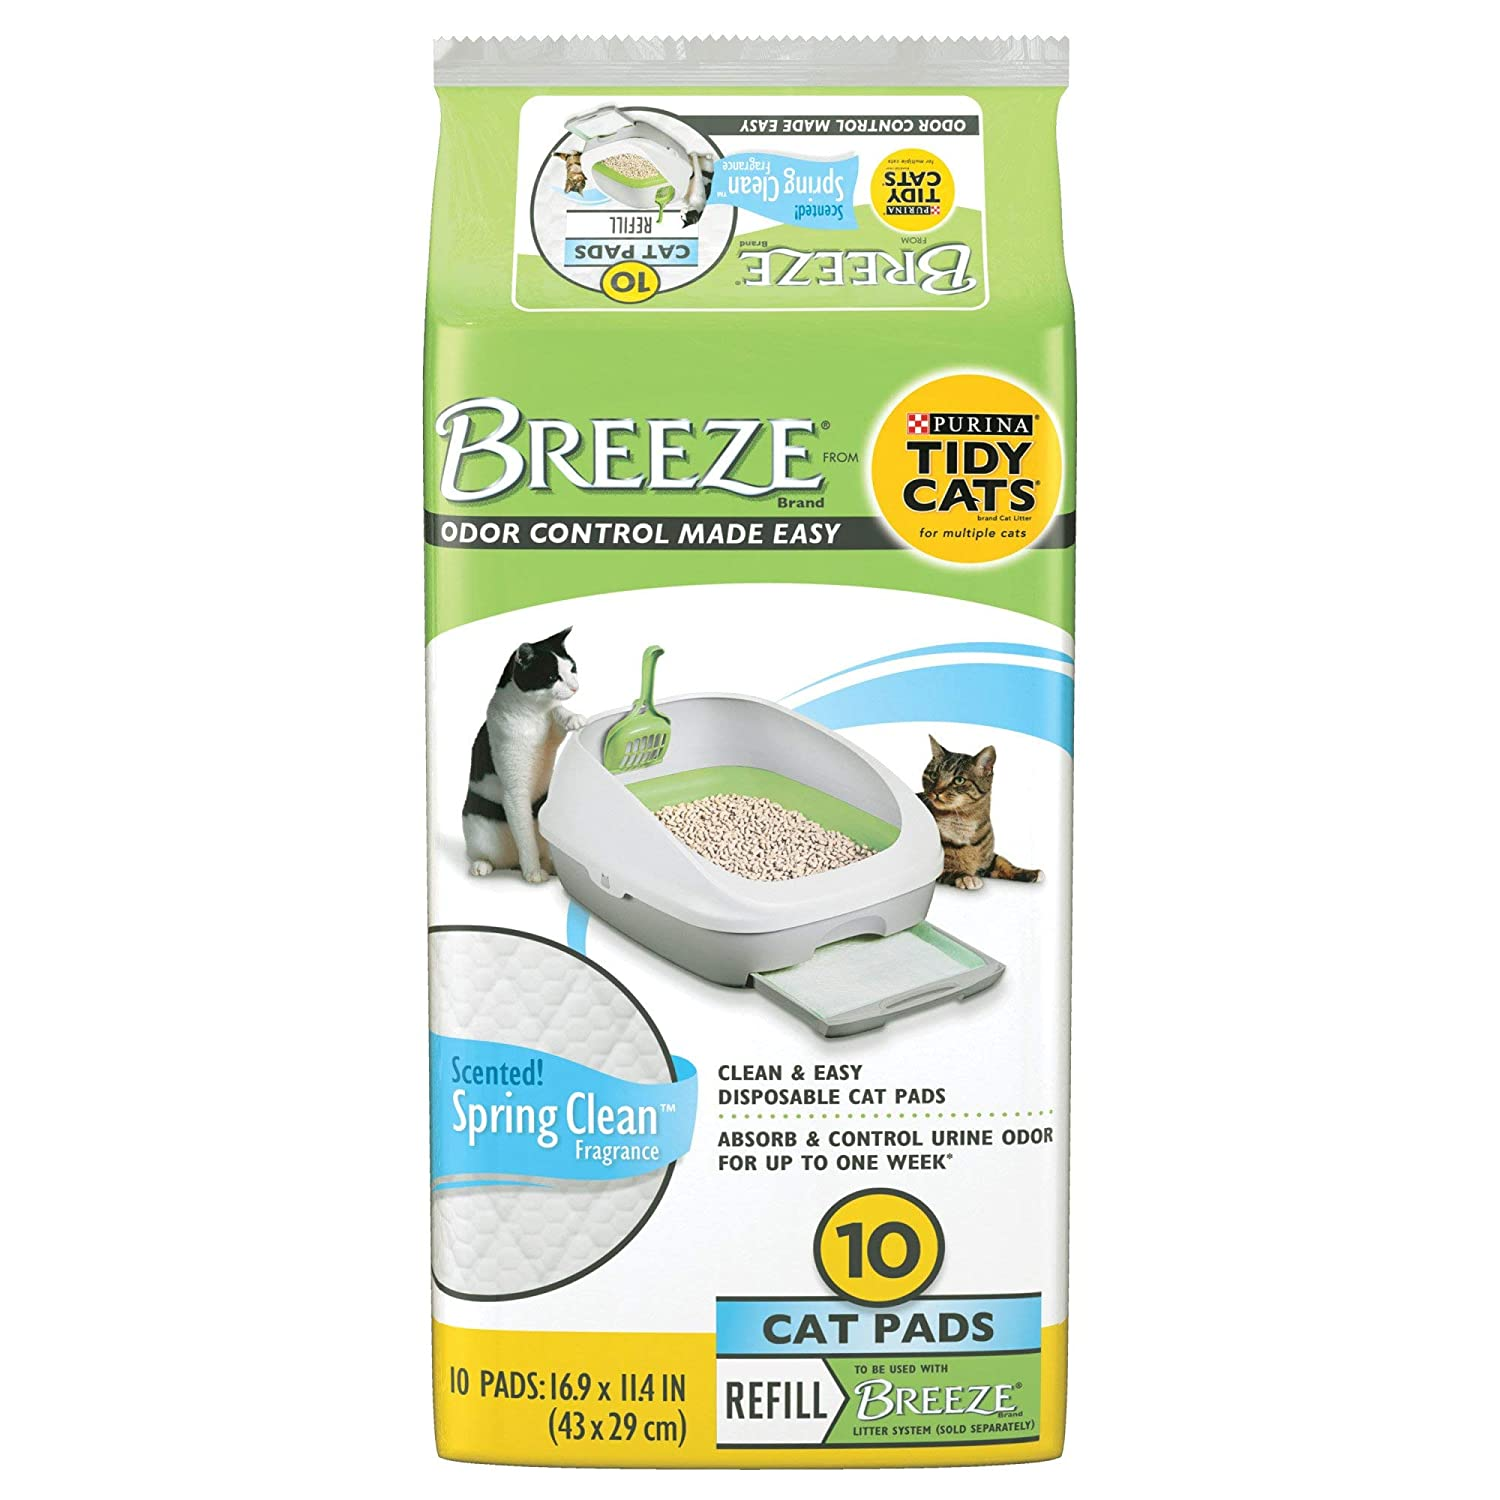 Purina Tidy Cats Breeze Spring Clean Cat Pads Refill Pack 10 count pack